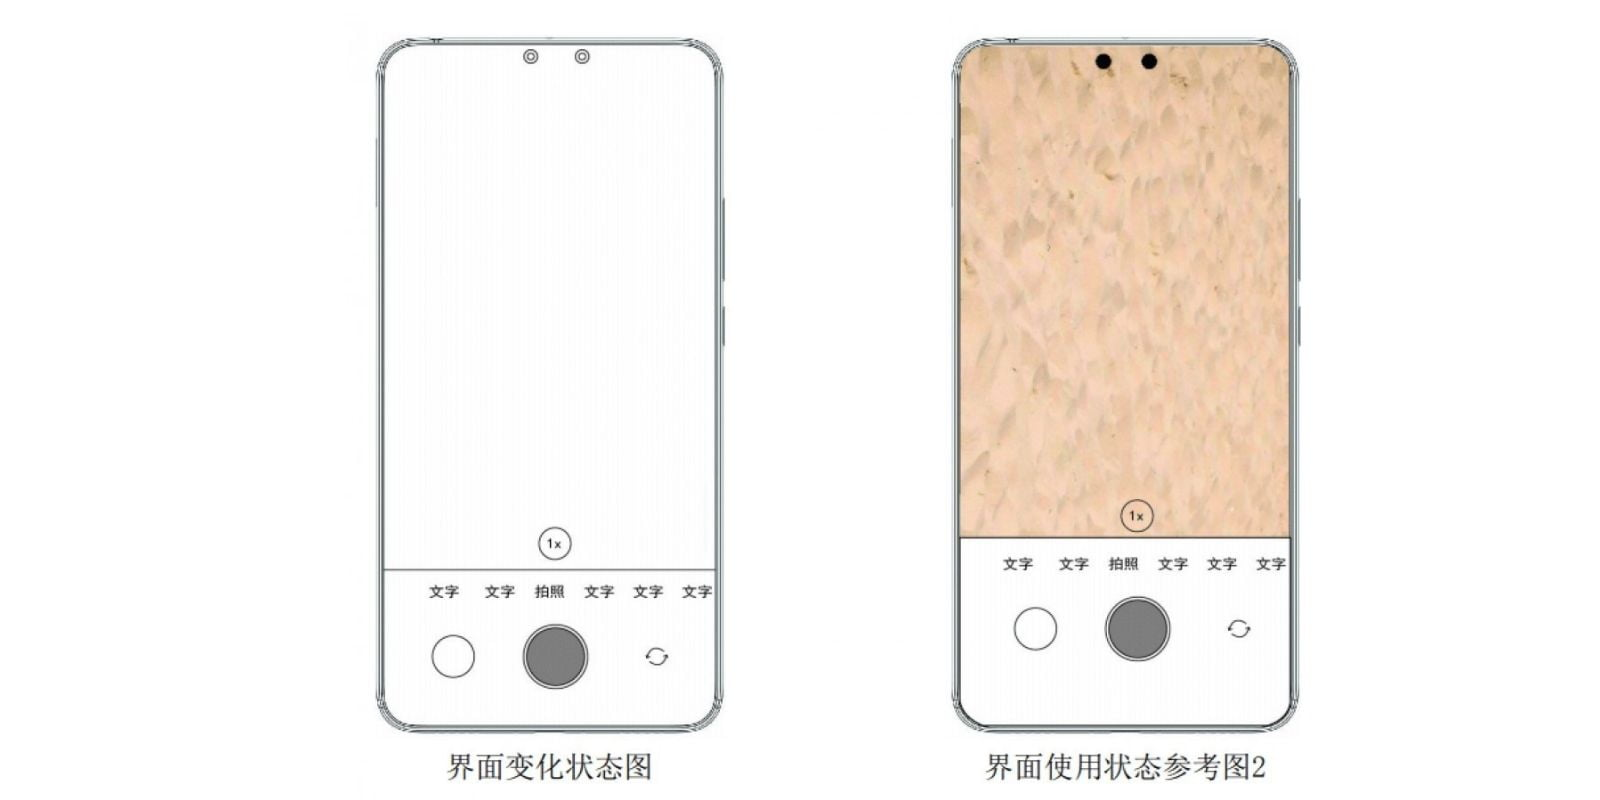 xiaomi leaked under-display camera sensors